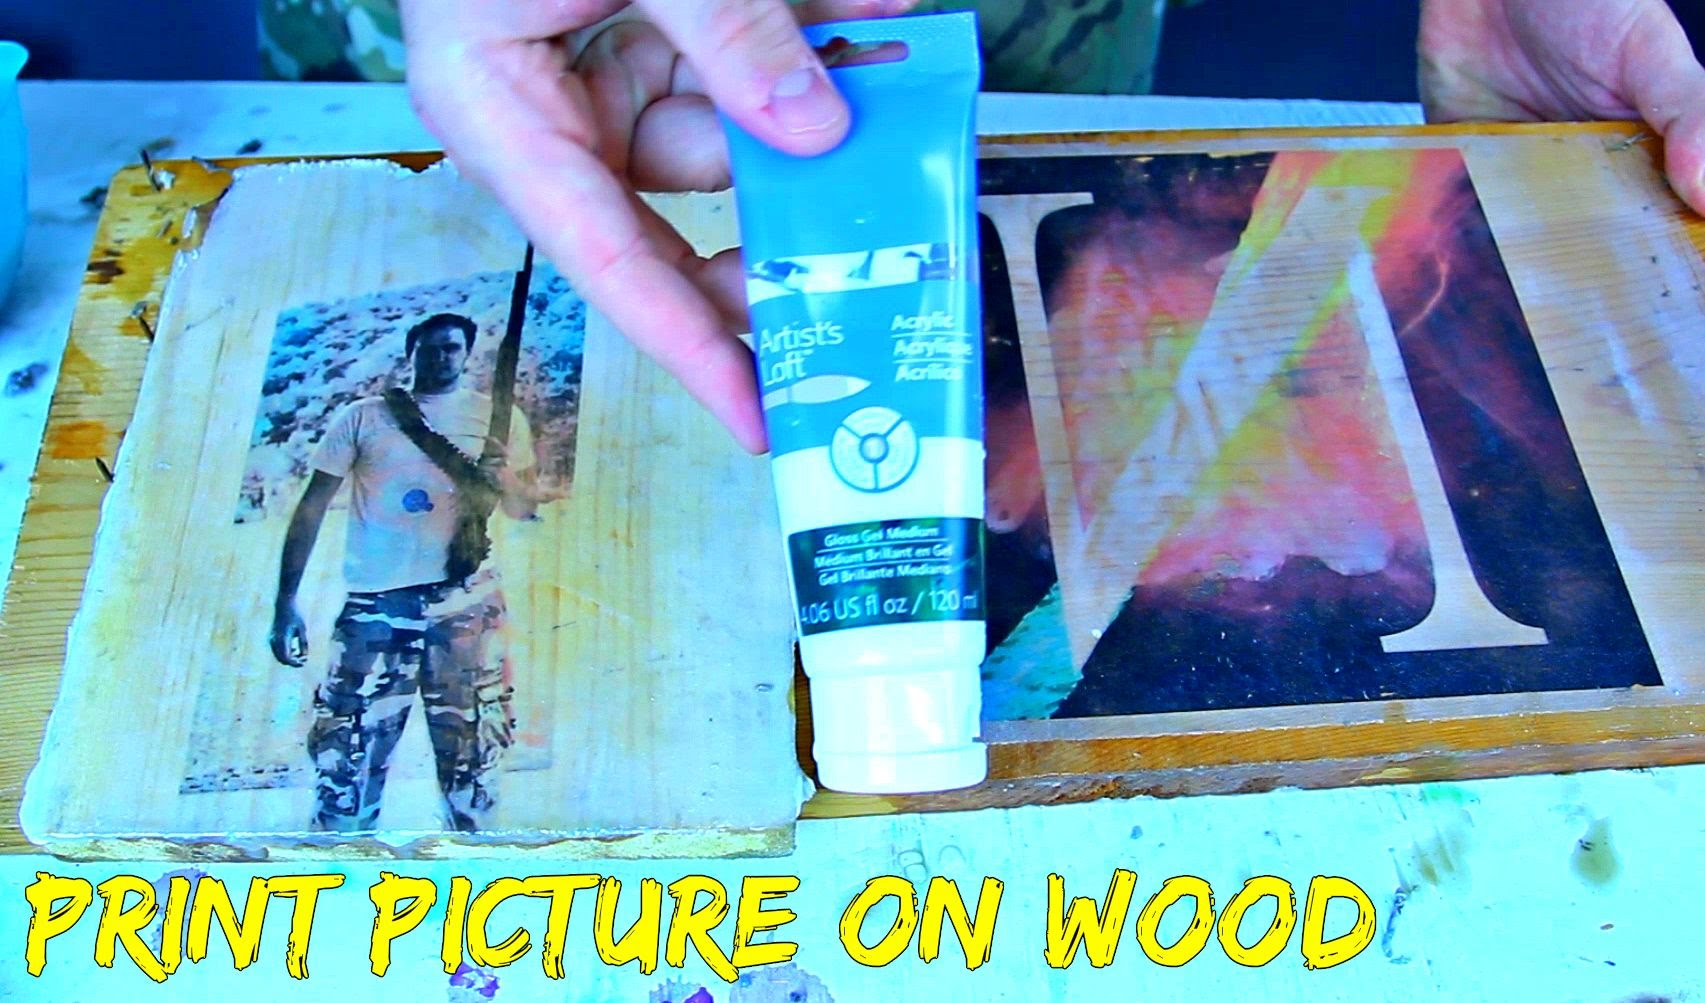 Have you ever tried to 'woodphoto' a picture? Here's how!